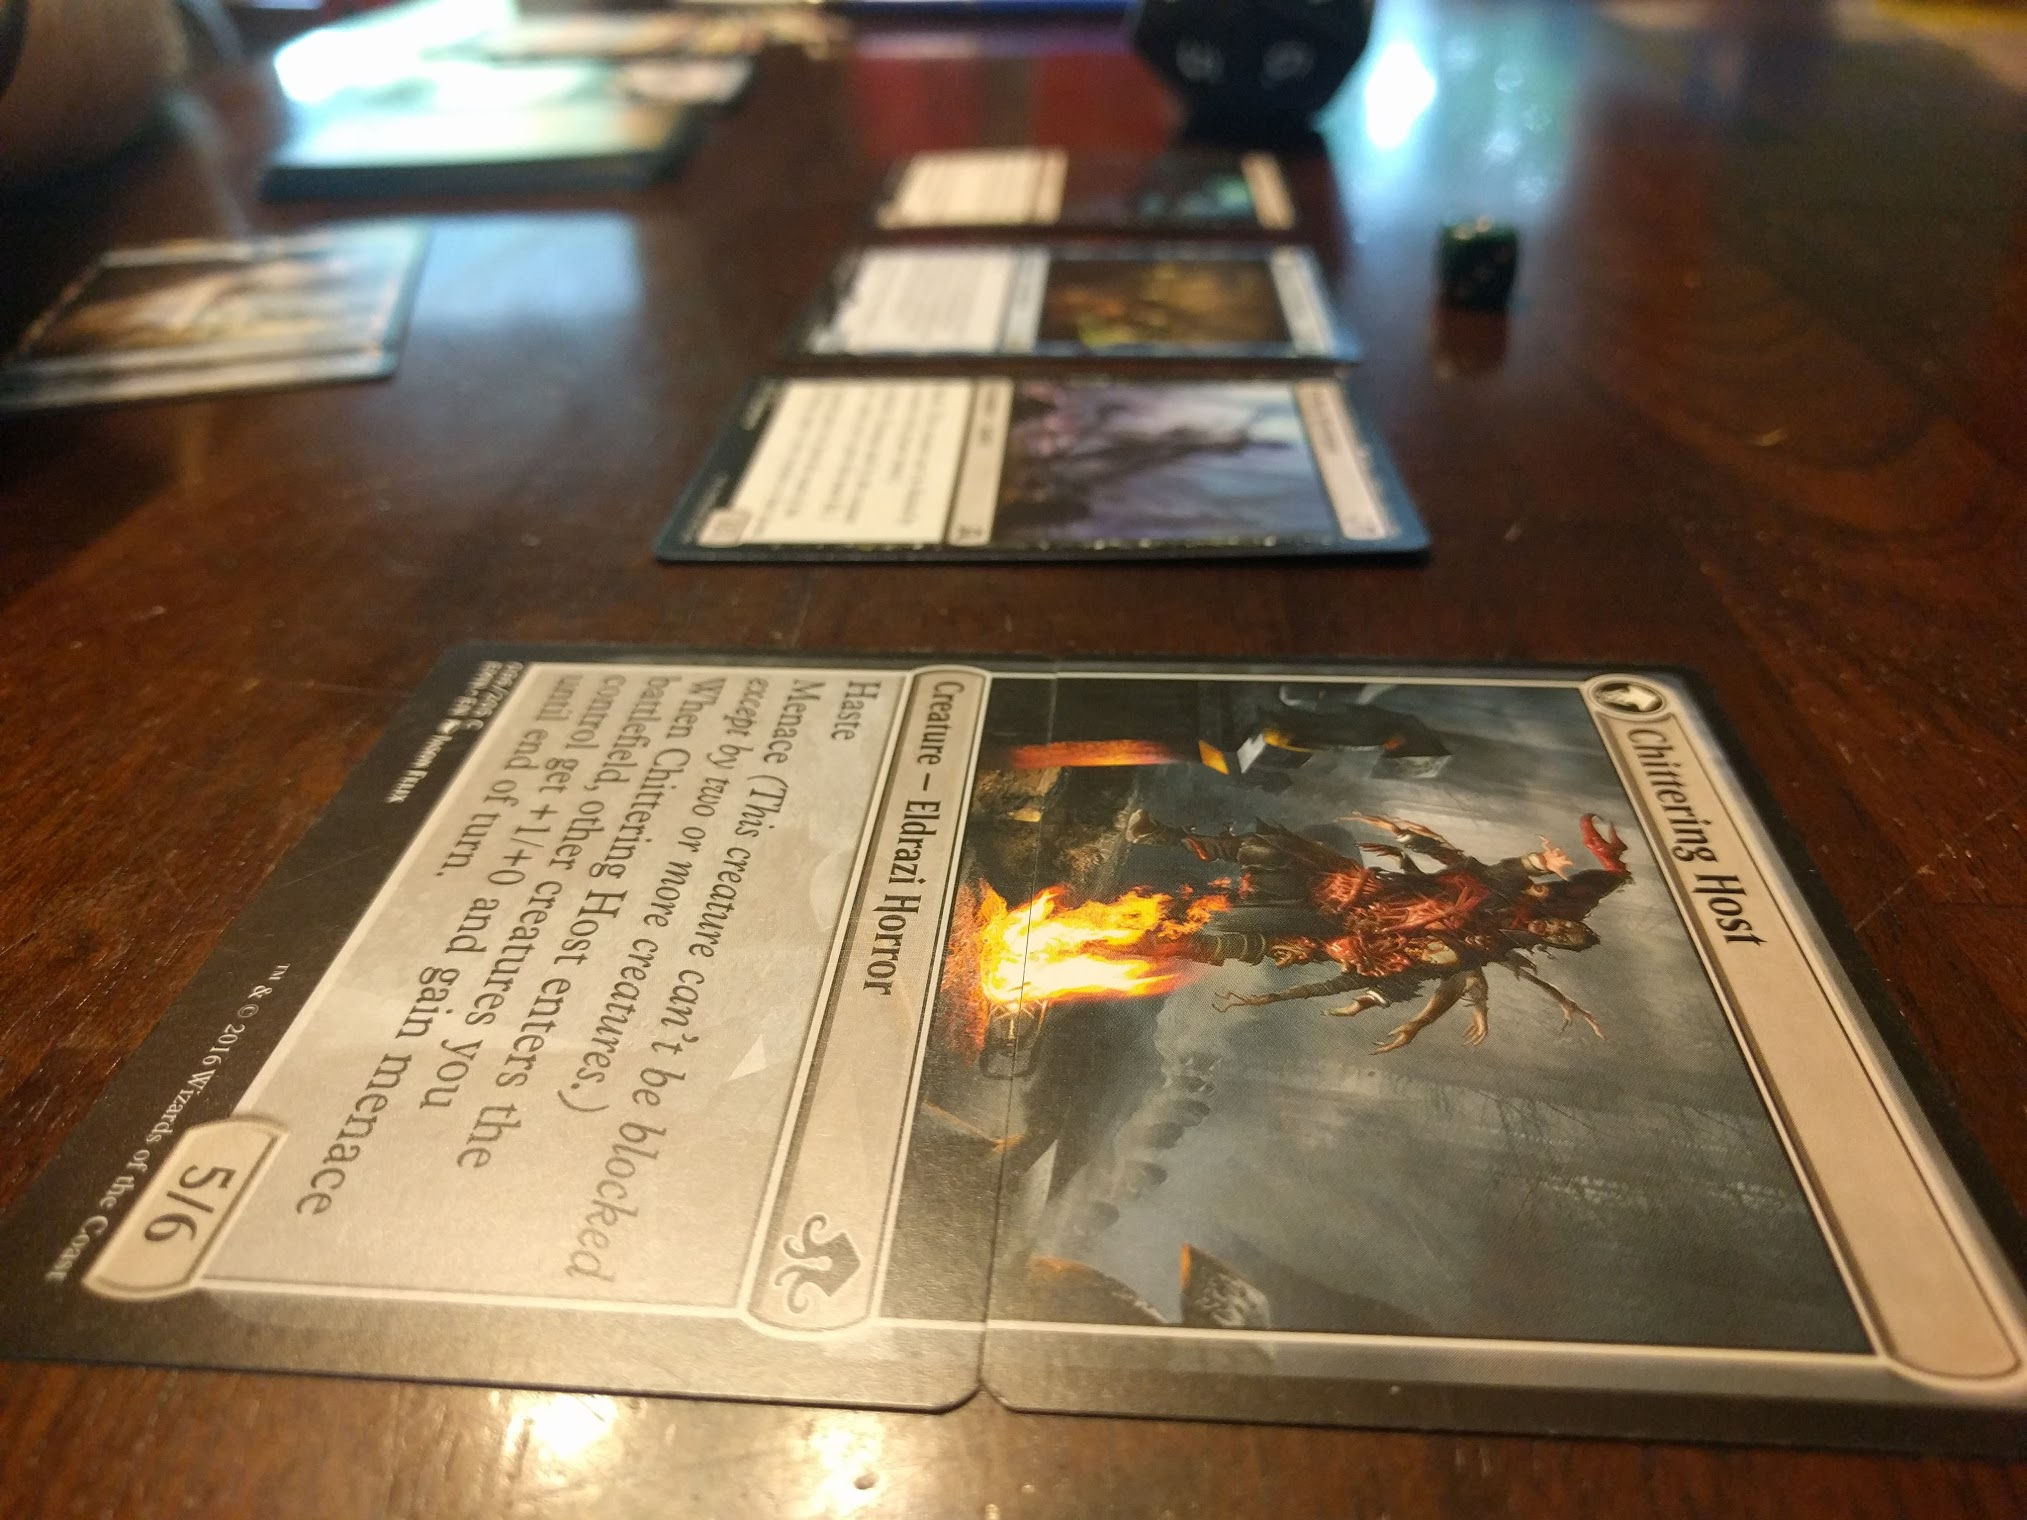 Dear Wizards of the Coast, for the love of Cthulu, please stop printing double sided cards.